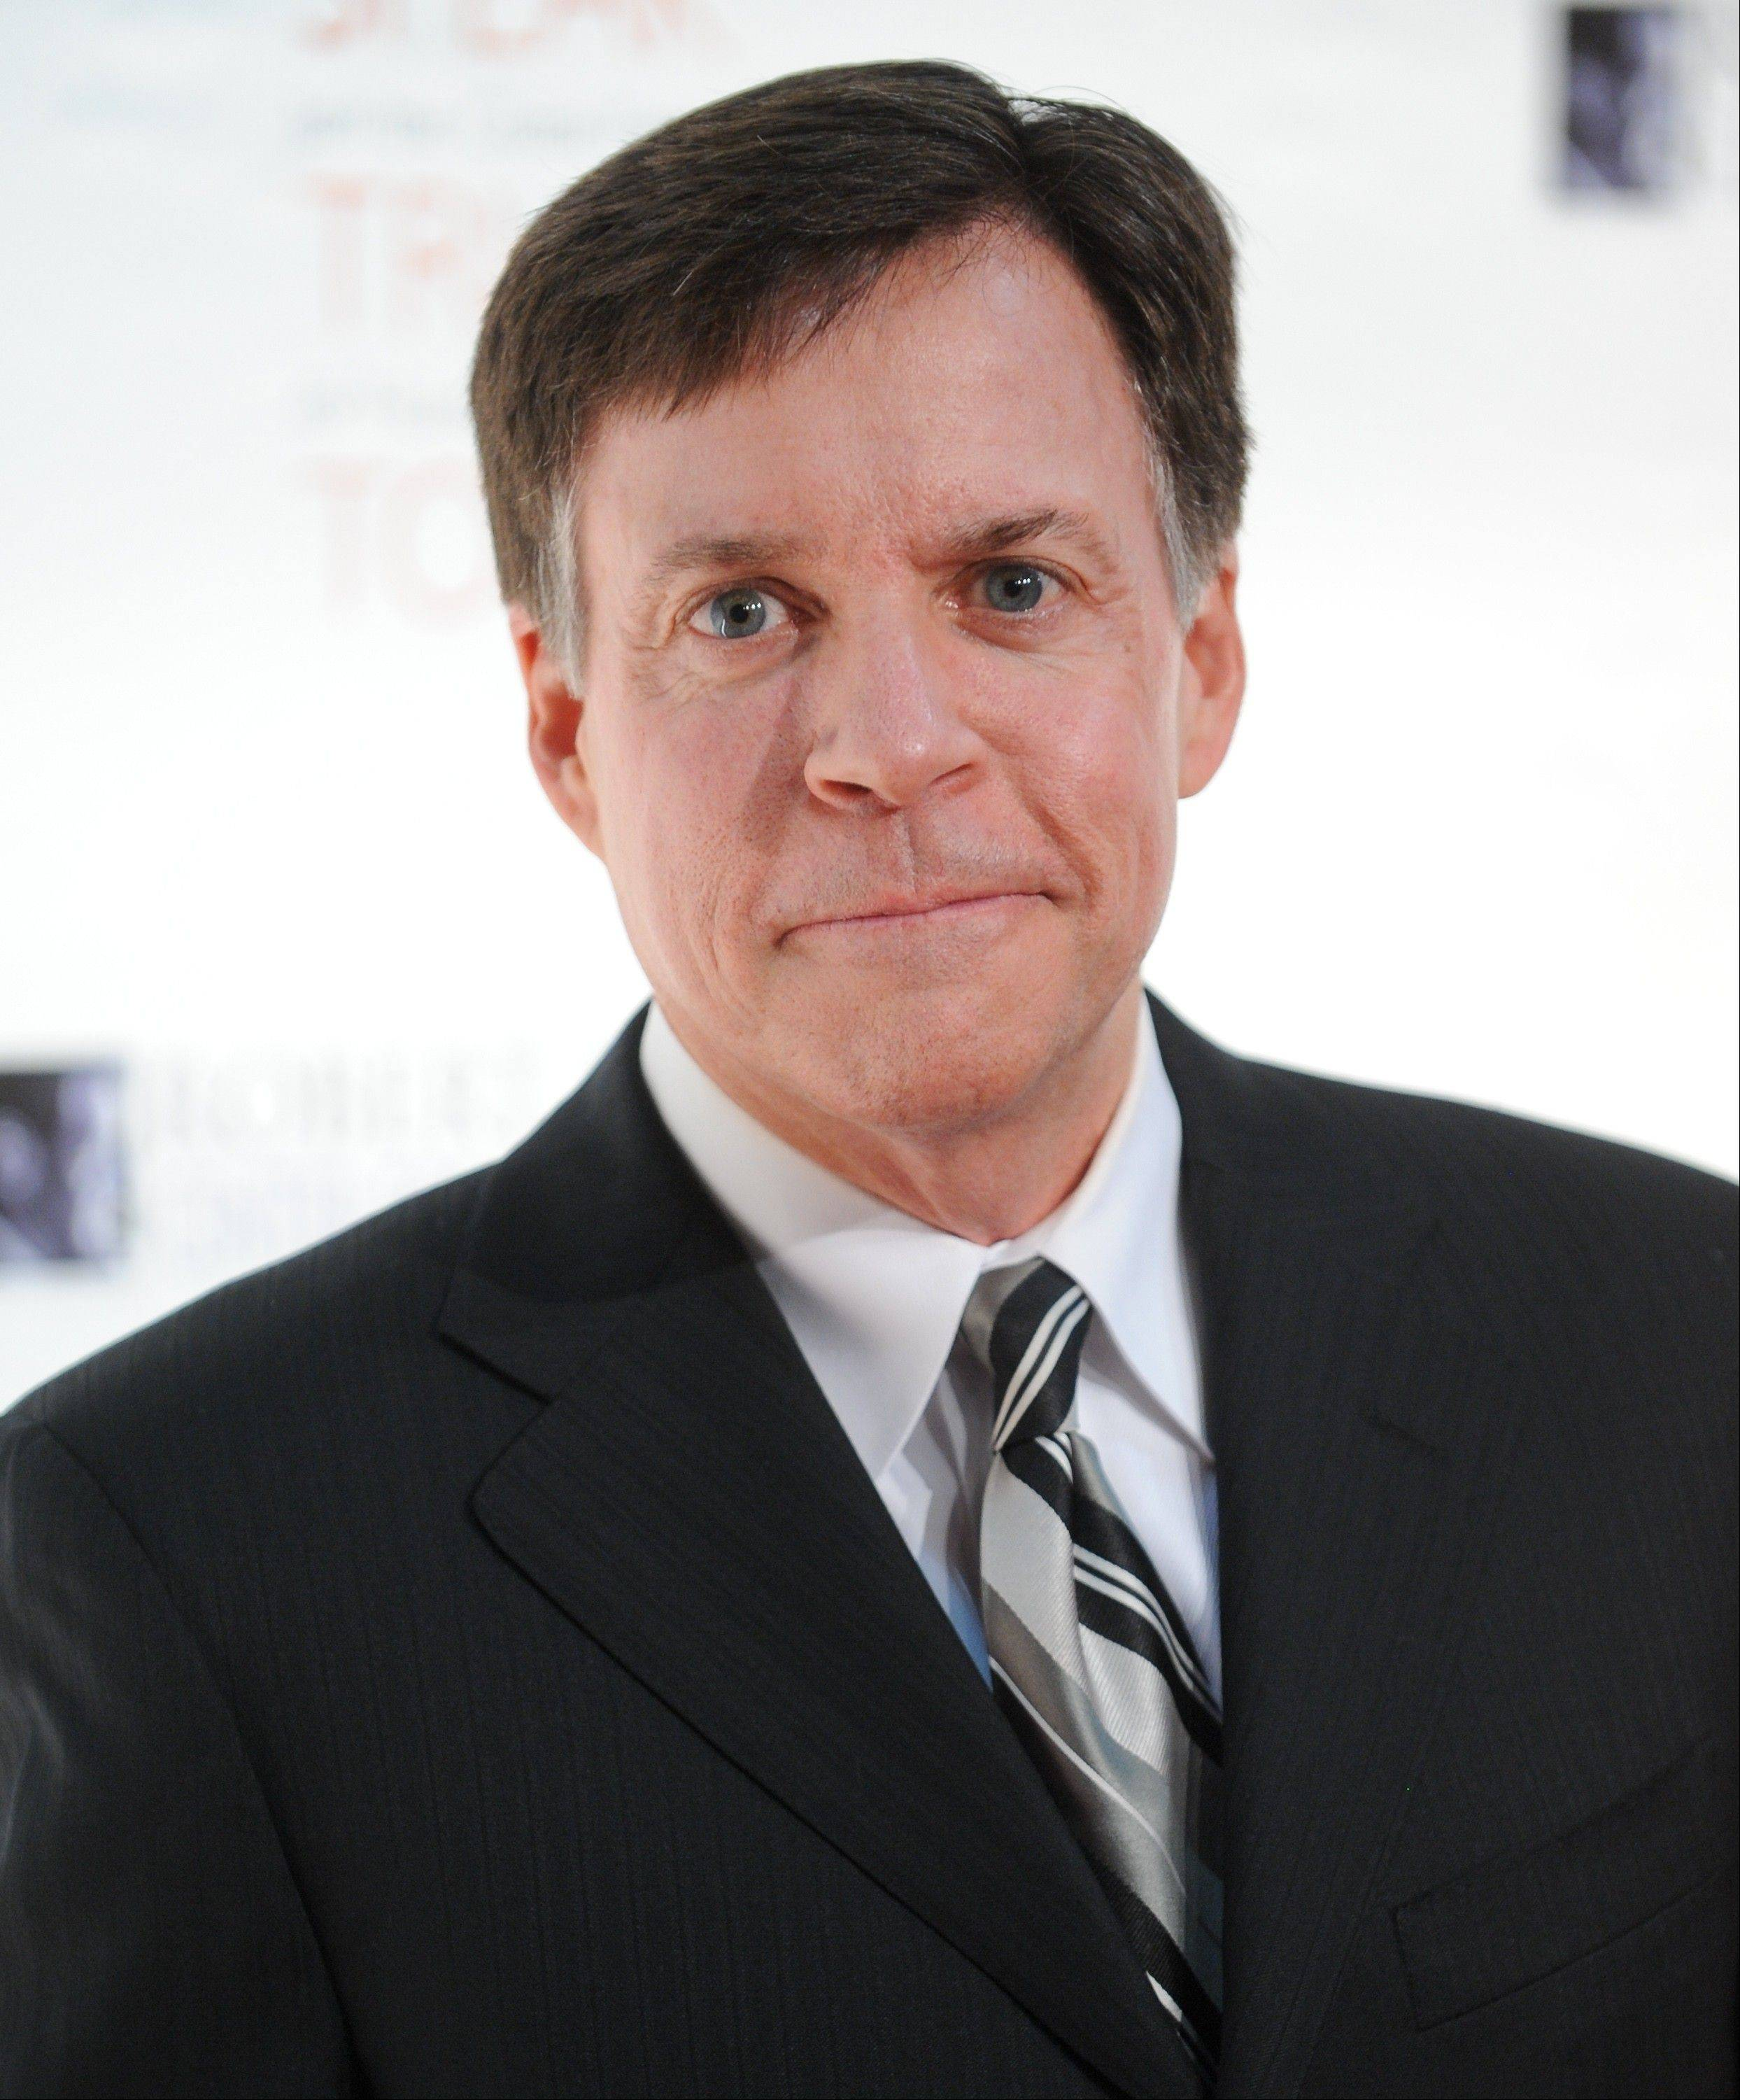 Bob Costas� �Sunday Night Football� halftime commentary supporting gun control sparked a Fox News Channel debate Monday on whether NBC should fire him. The NBC sportscaster, who frequently delivers commentary at halftime of the weekly NFL showcase, addressed the weekend�s murder-suicide involving Kansas City Chiefs linebacker Jovan Belcher.